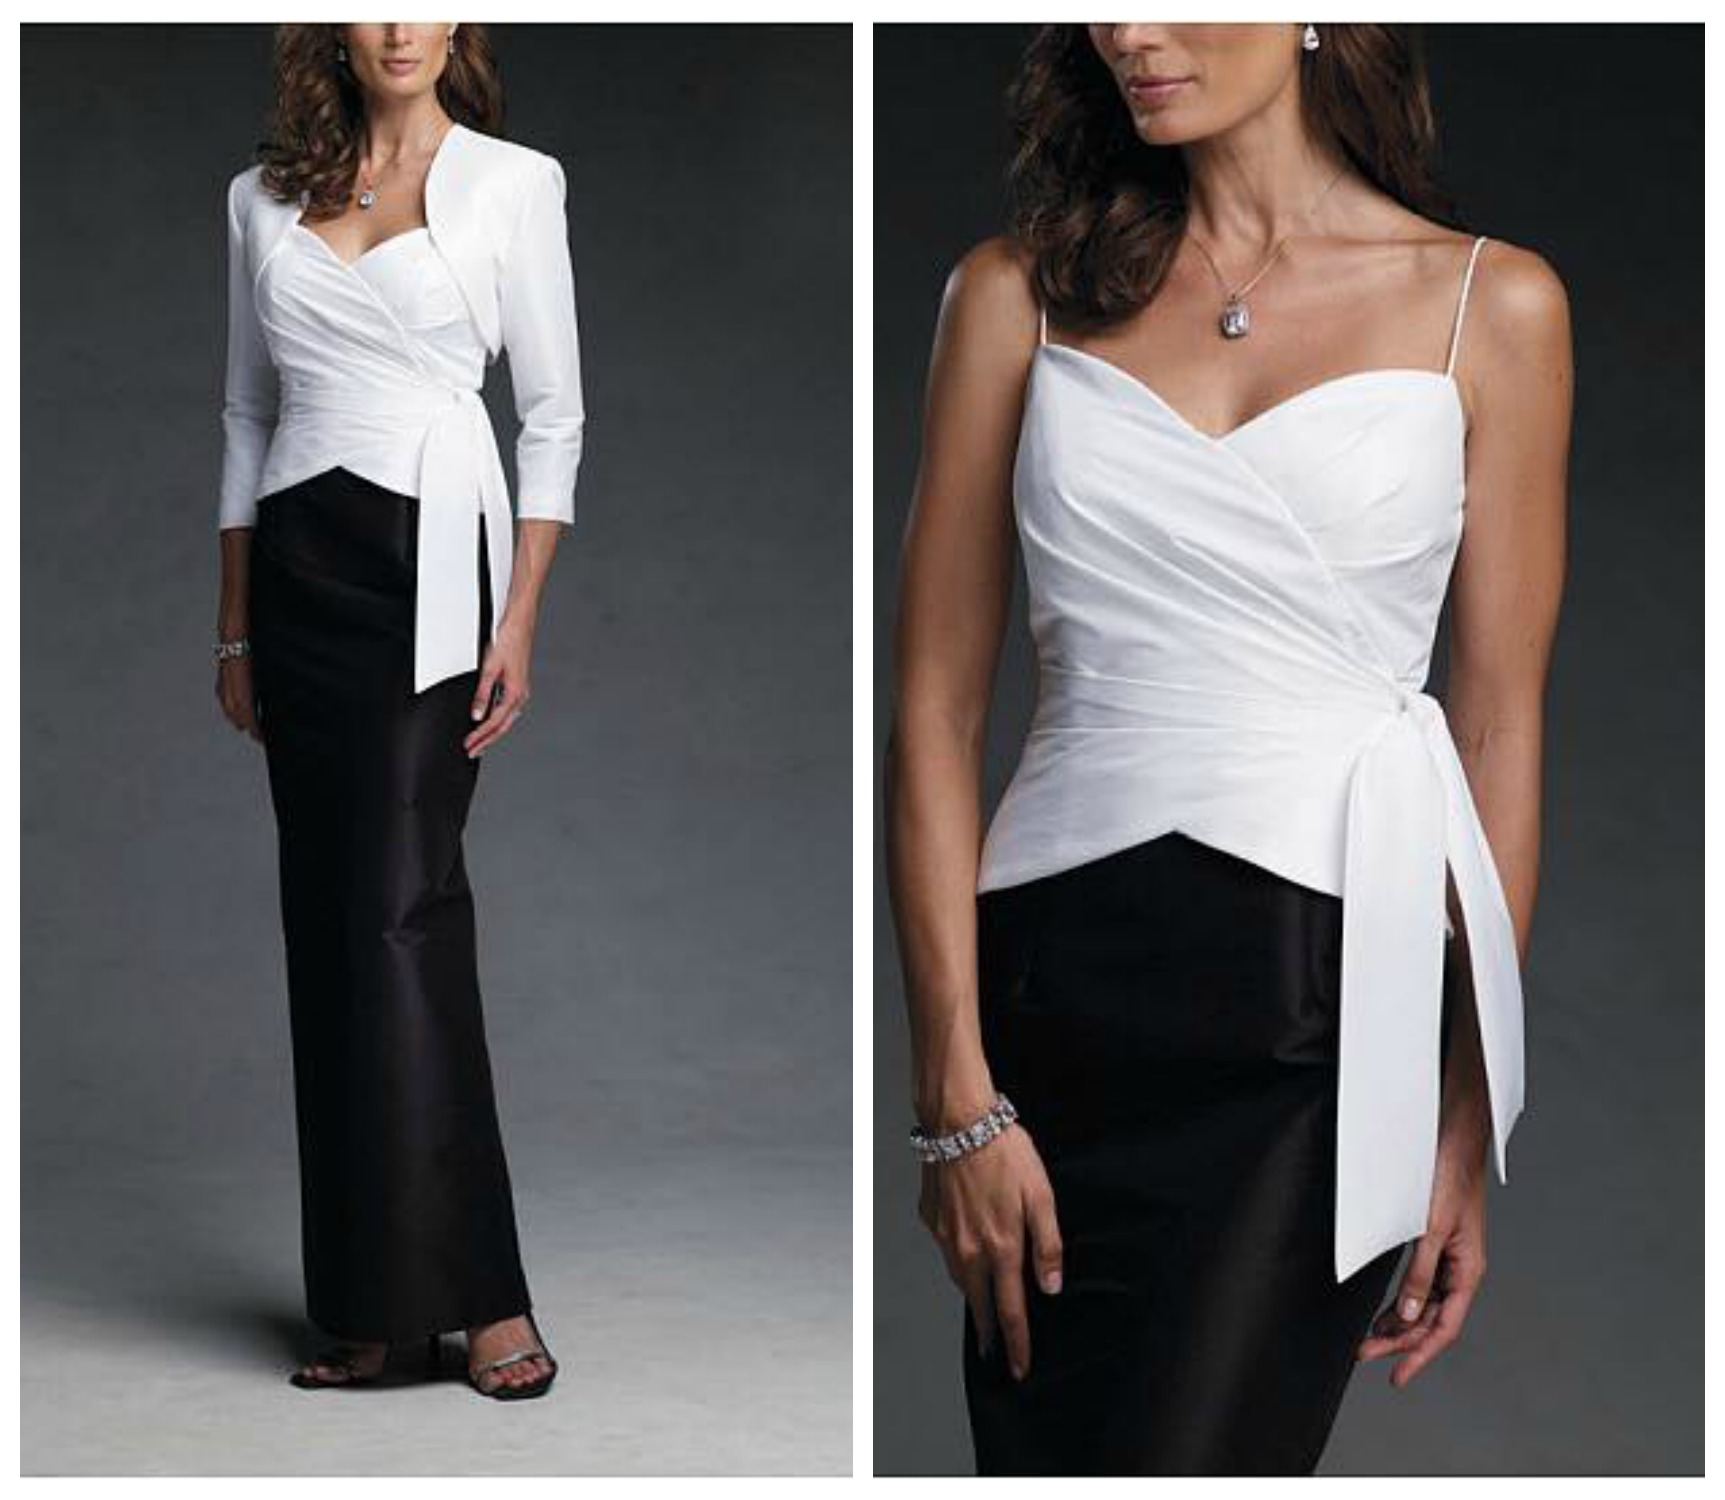 7142baccdfbf ... abito in black and white per una cerimonia serale.  MADREDELLASPOSA-DRESSES2